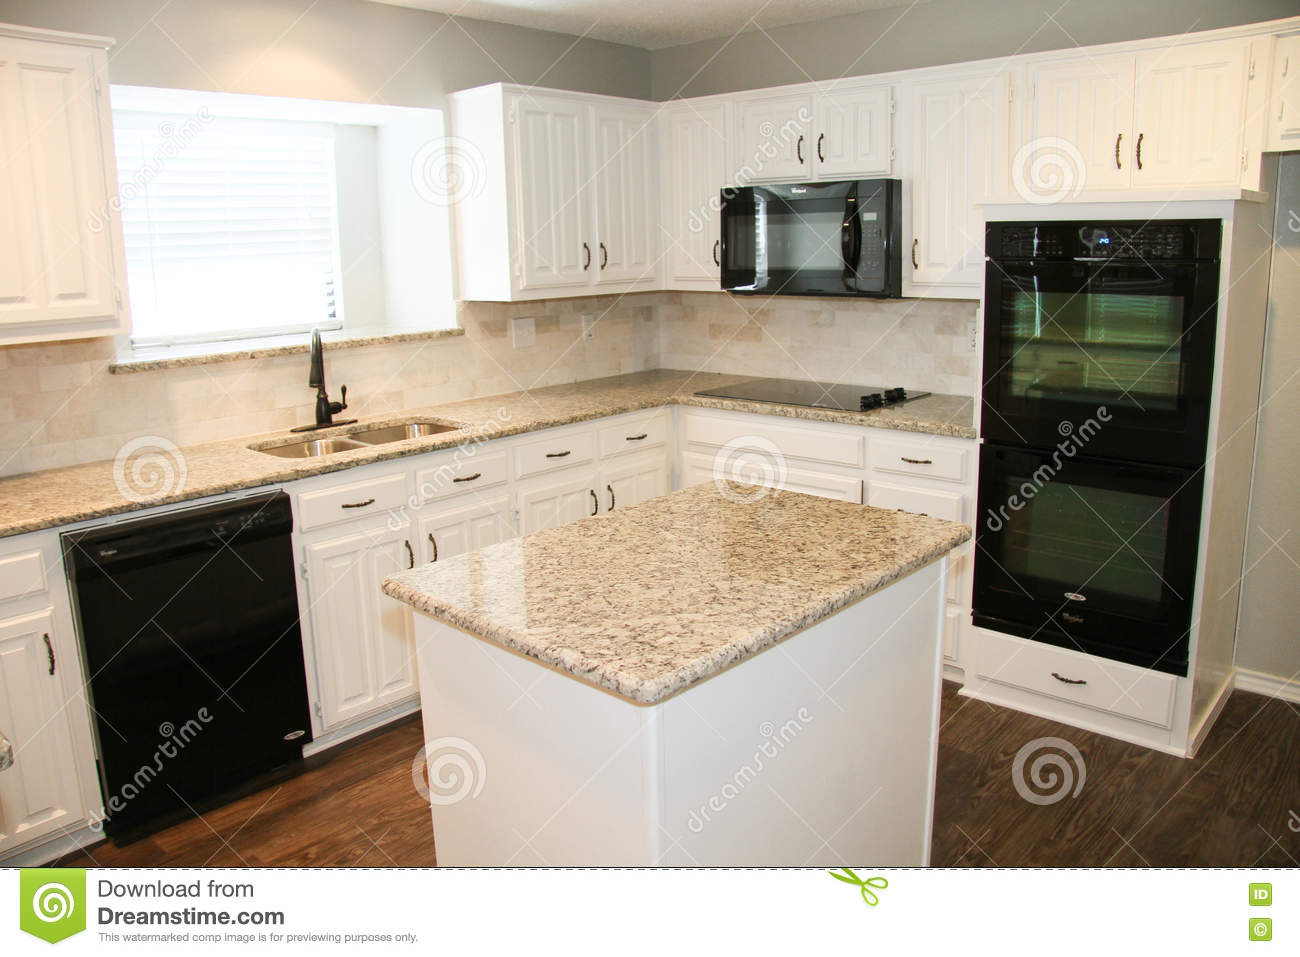 Kitchen Countertop And Poster Toned Royalty Free Stock